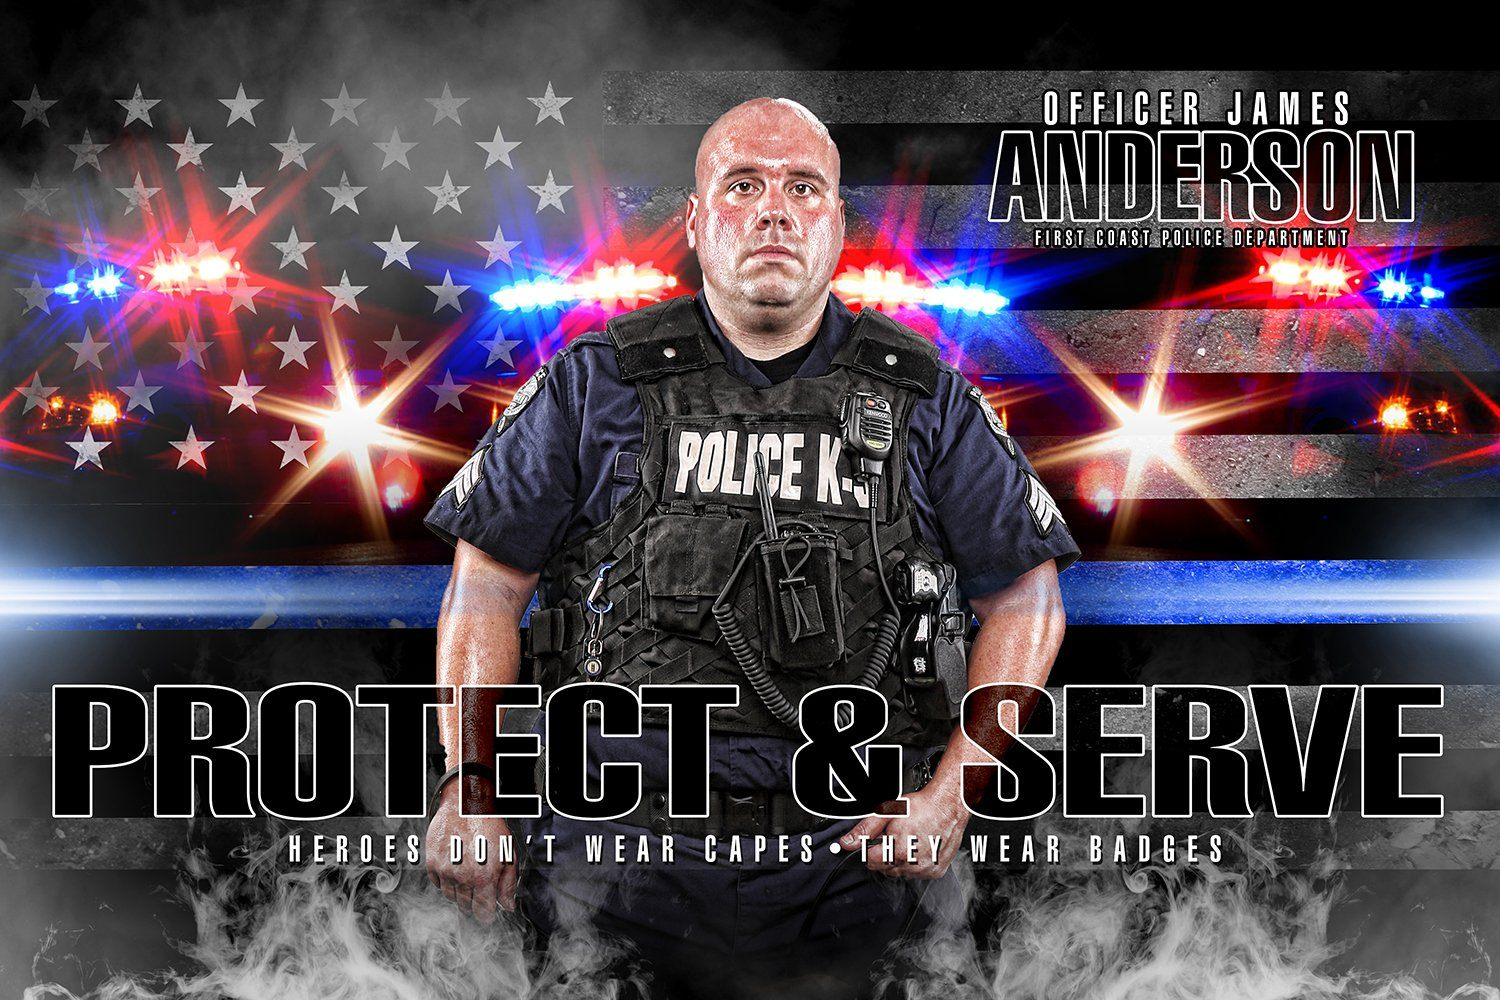 Police - V.2 - Heroes Series - Poster/Banner H-Photoshop Template - Photo Solutions